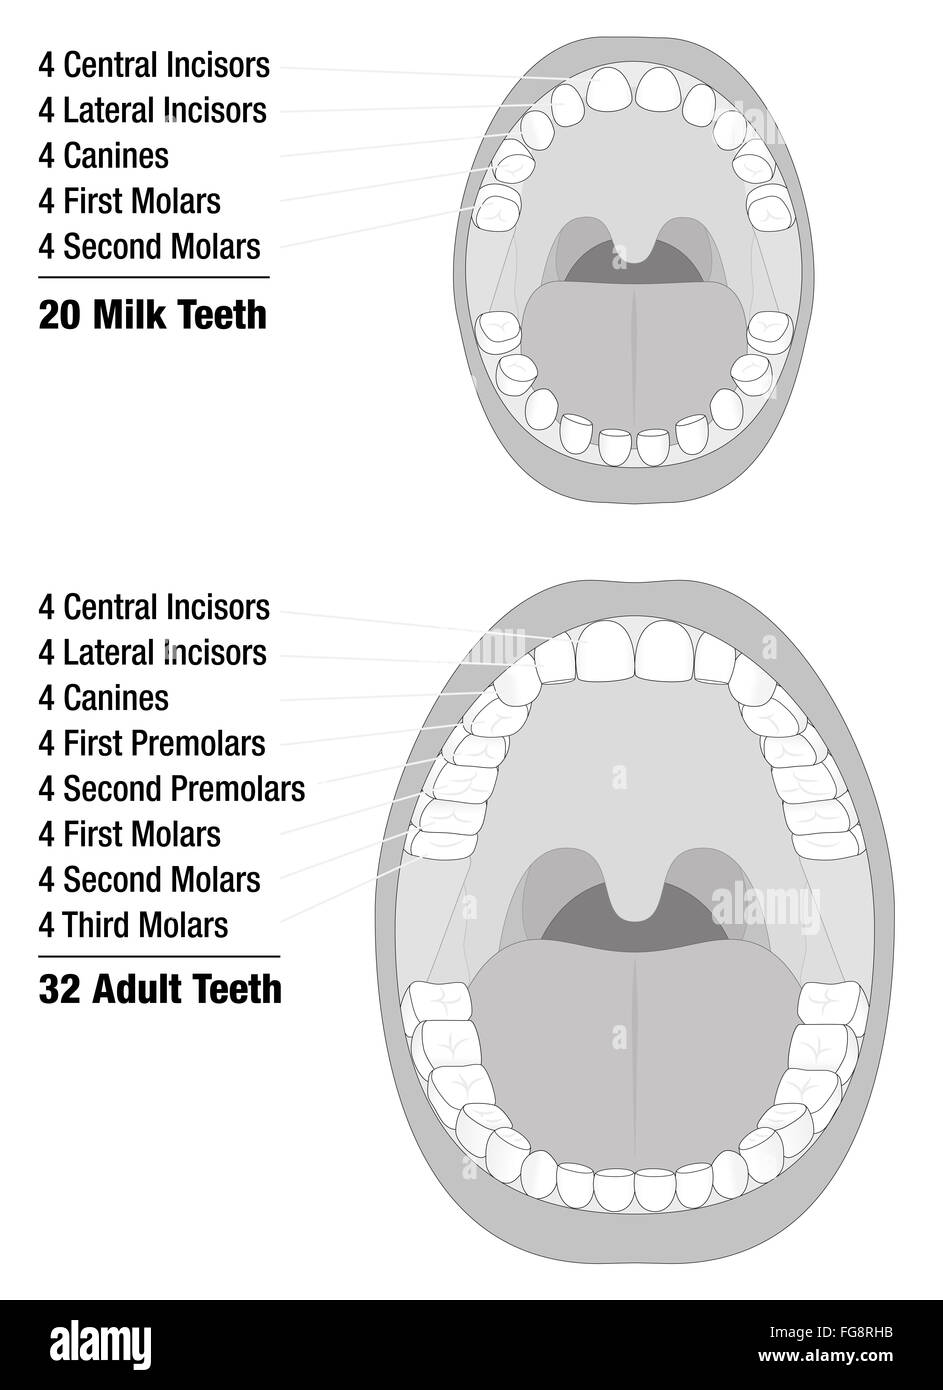 Milk teeth adult teeth comparison of temporary teeth of a child milk teeth adult teeth comparison of temporary teeth of a child and permanent teeth of an adult natural dentition ccuart Gallery